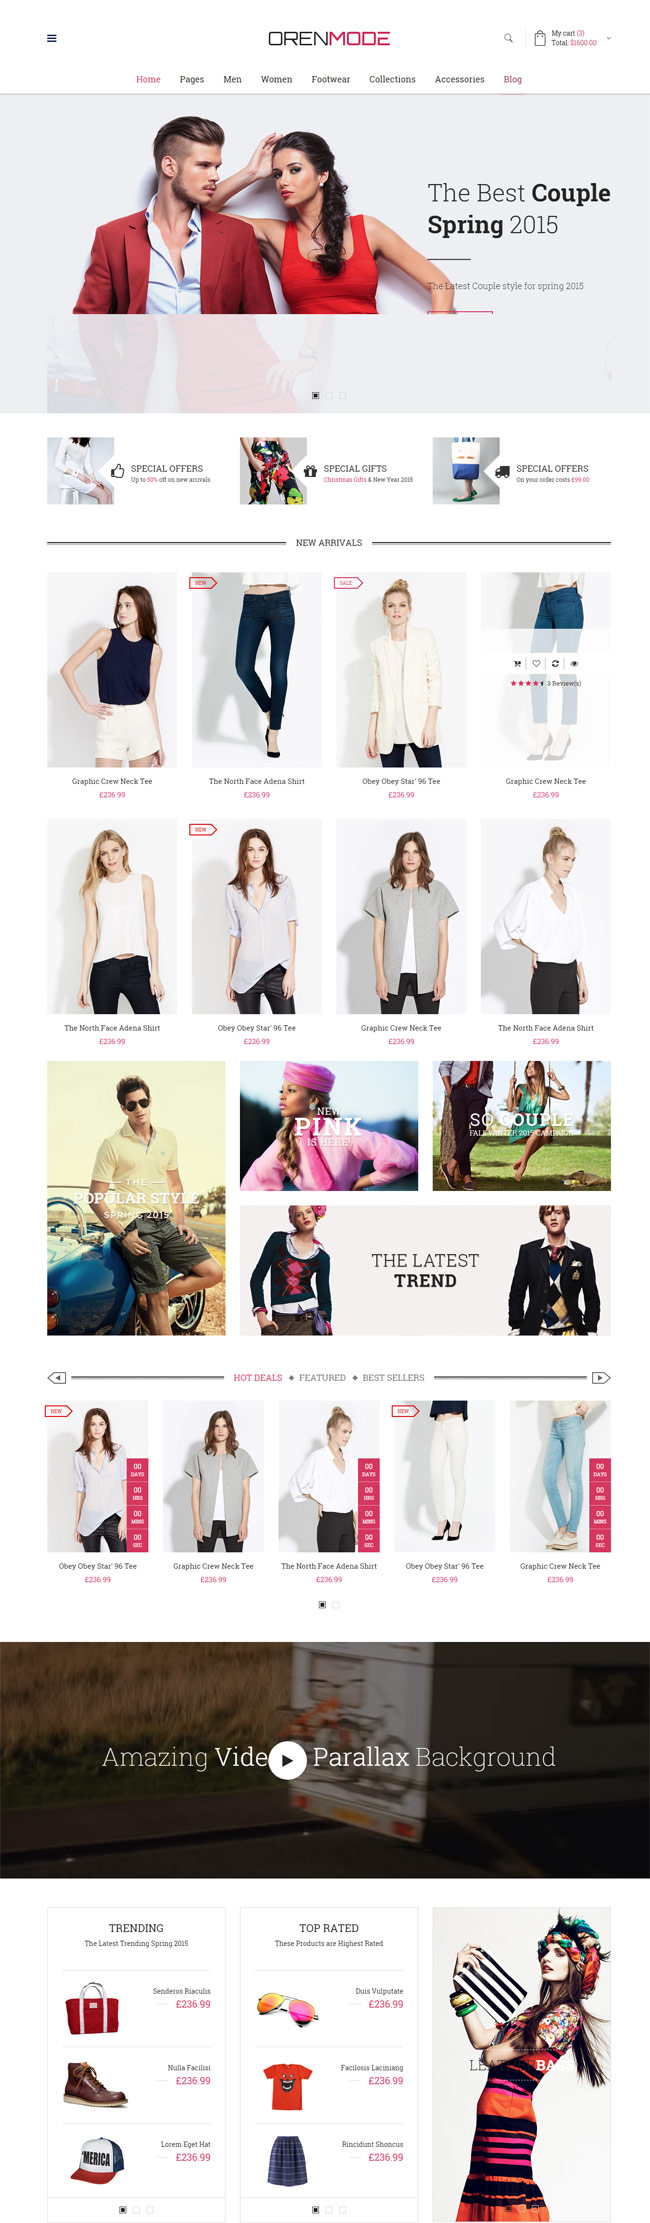 OrenMode-Ecommerce-HTML5-Template